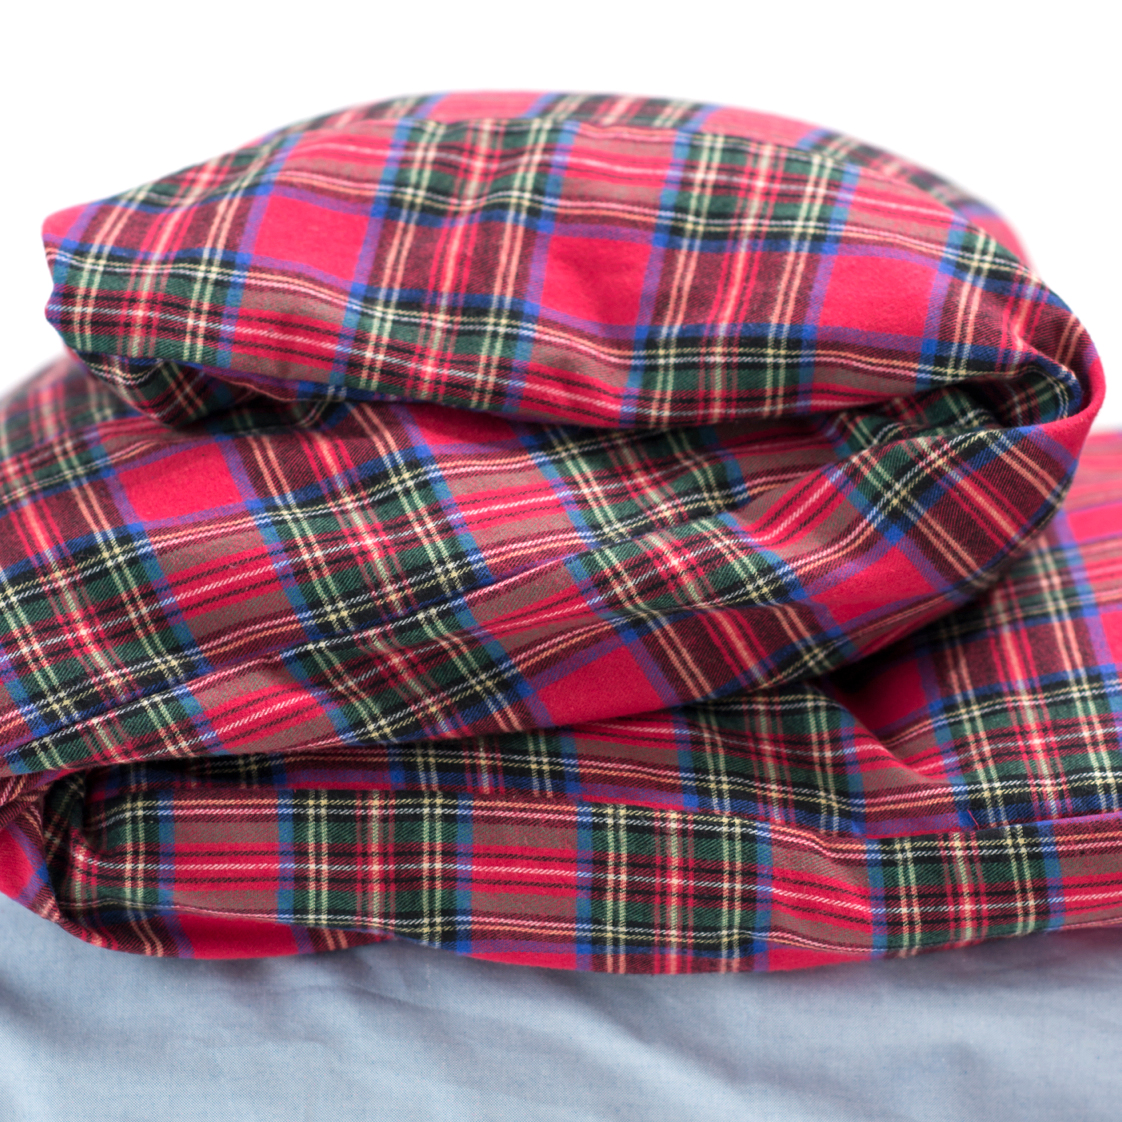 Charlie's Original Duvet Cover red plaid dorm room bedding